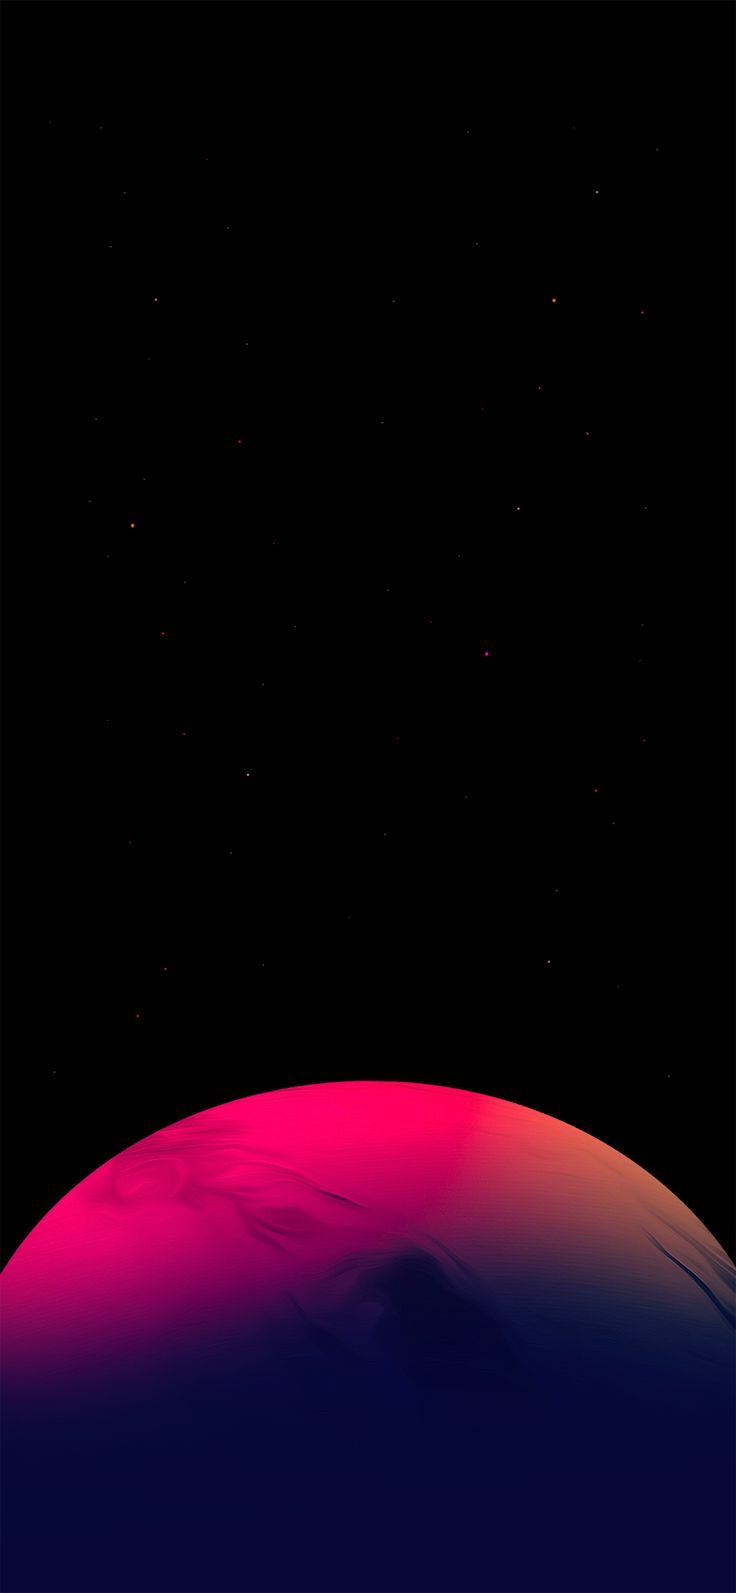 Pin By Hava Wildan On Gnarly In 2020 Space Iphone Wallpaper Iphone Wallpaper Hipster Android Wallpaper